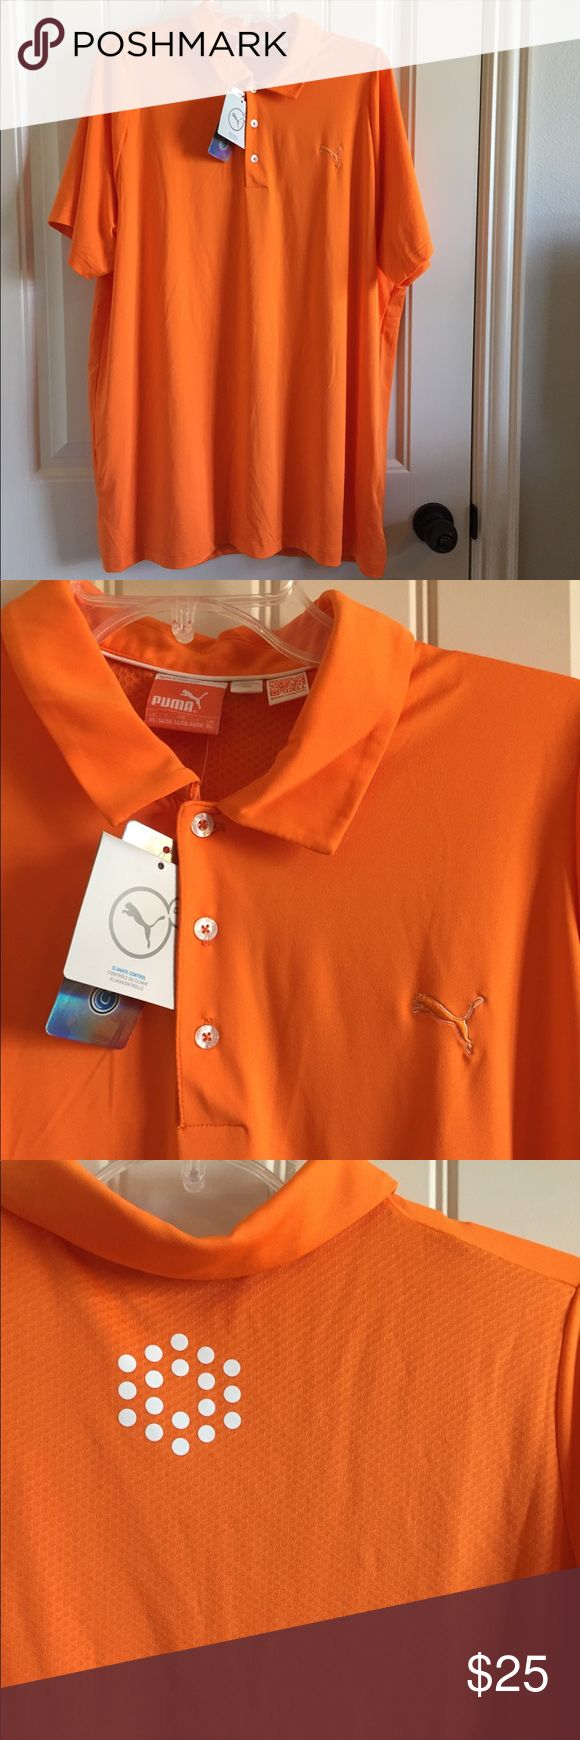 NWT Men's Puma Polo Size XL Great for golf or casual business dress. Smoke free home. Puma Shirts Polos